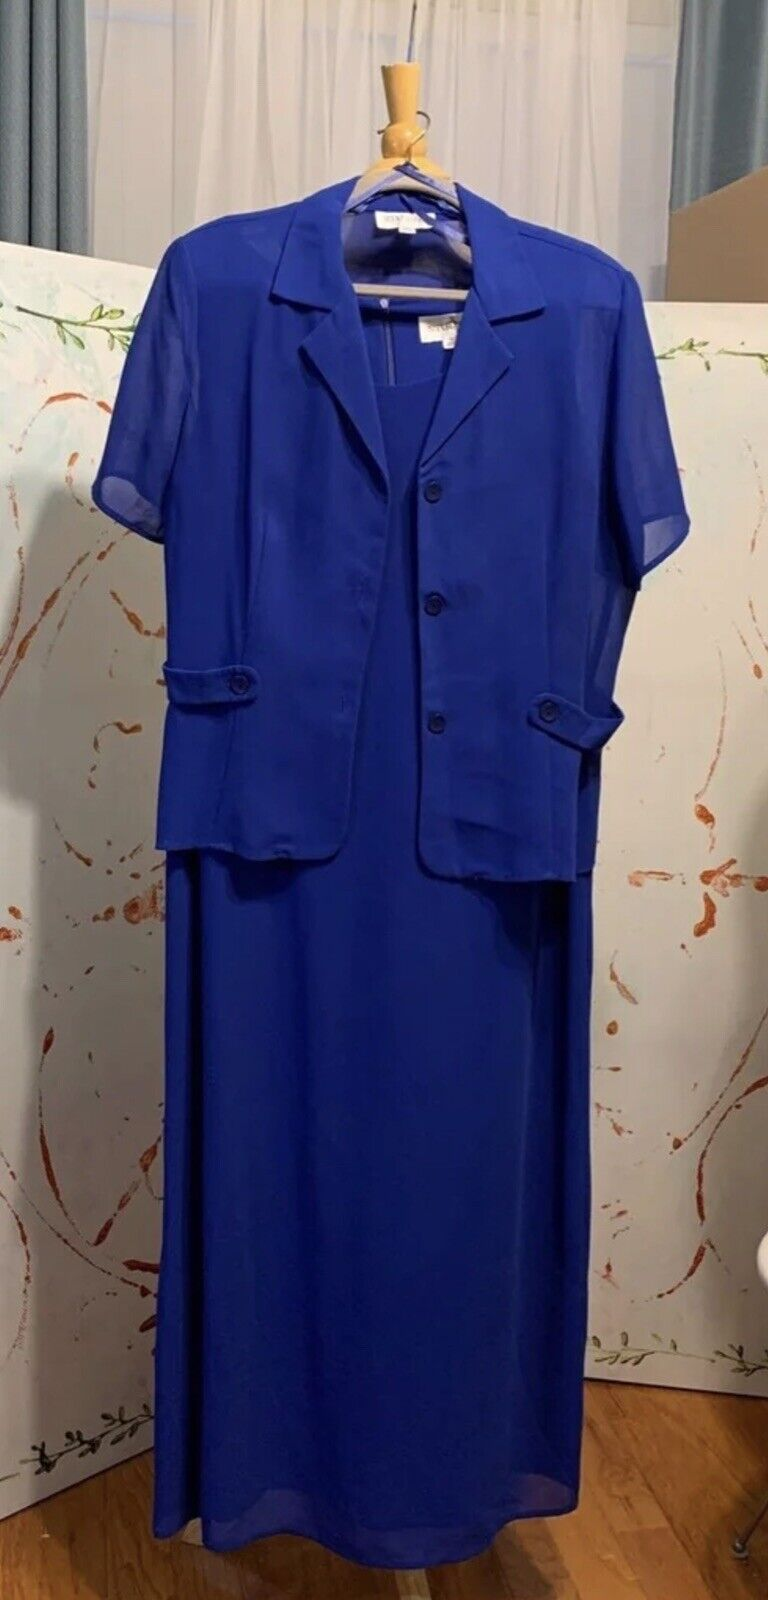 Size 16 Long Dress 2 pc Sheer Top Royal Blue Mother of the bride